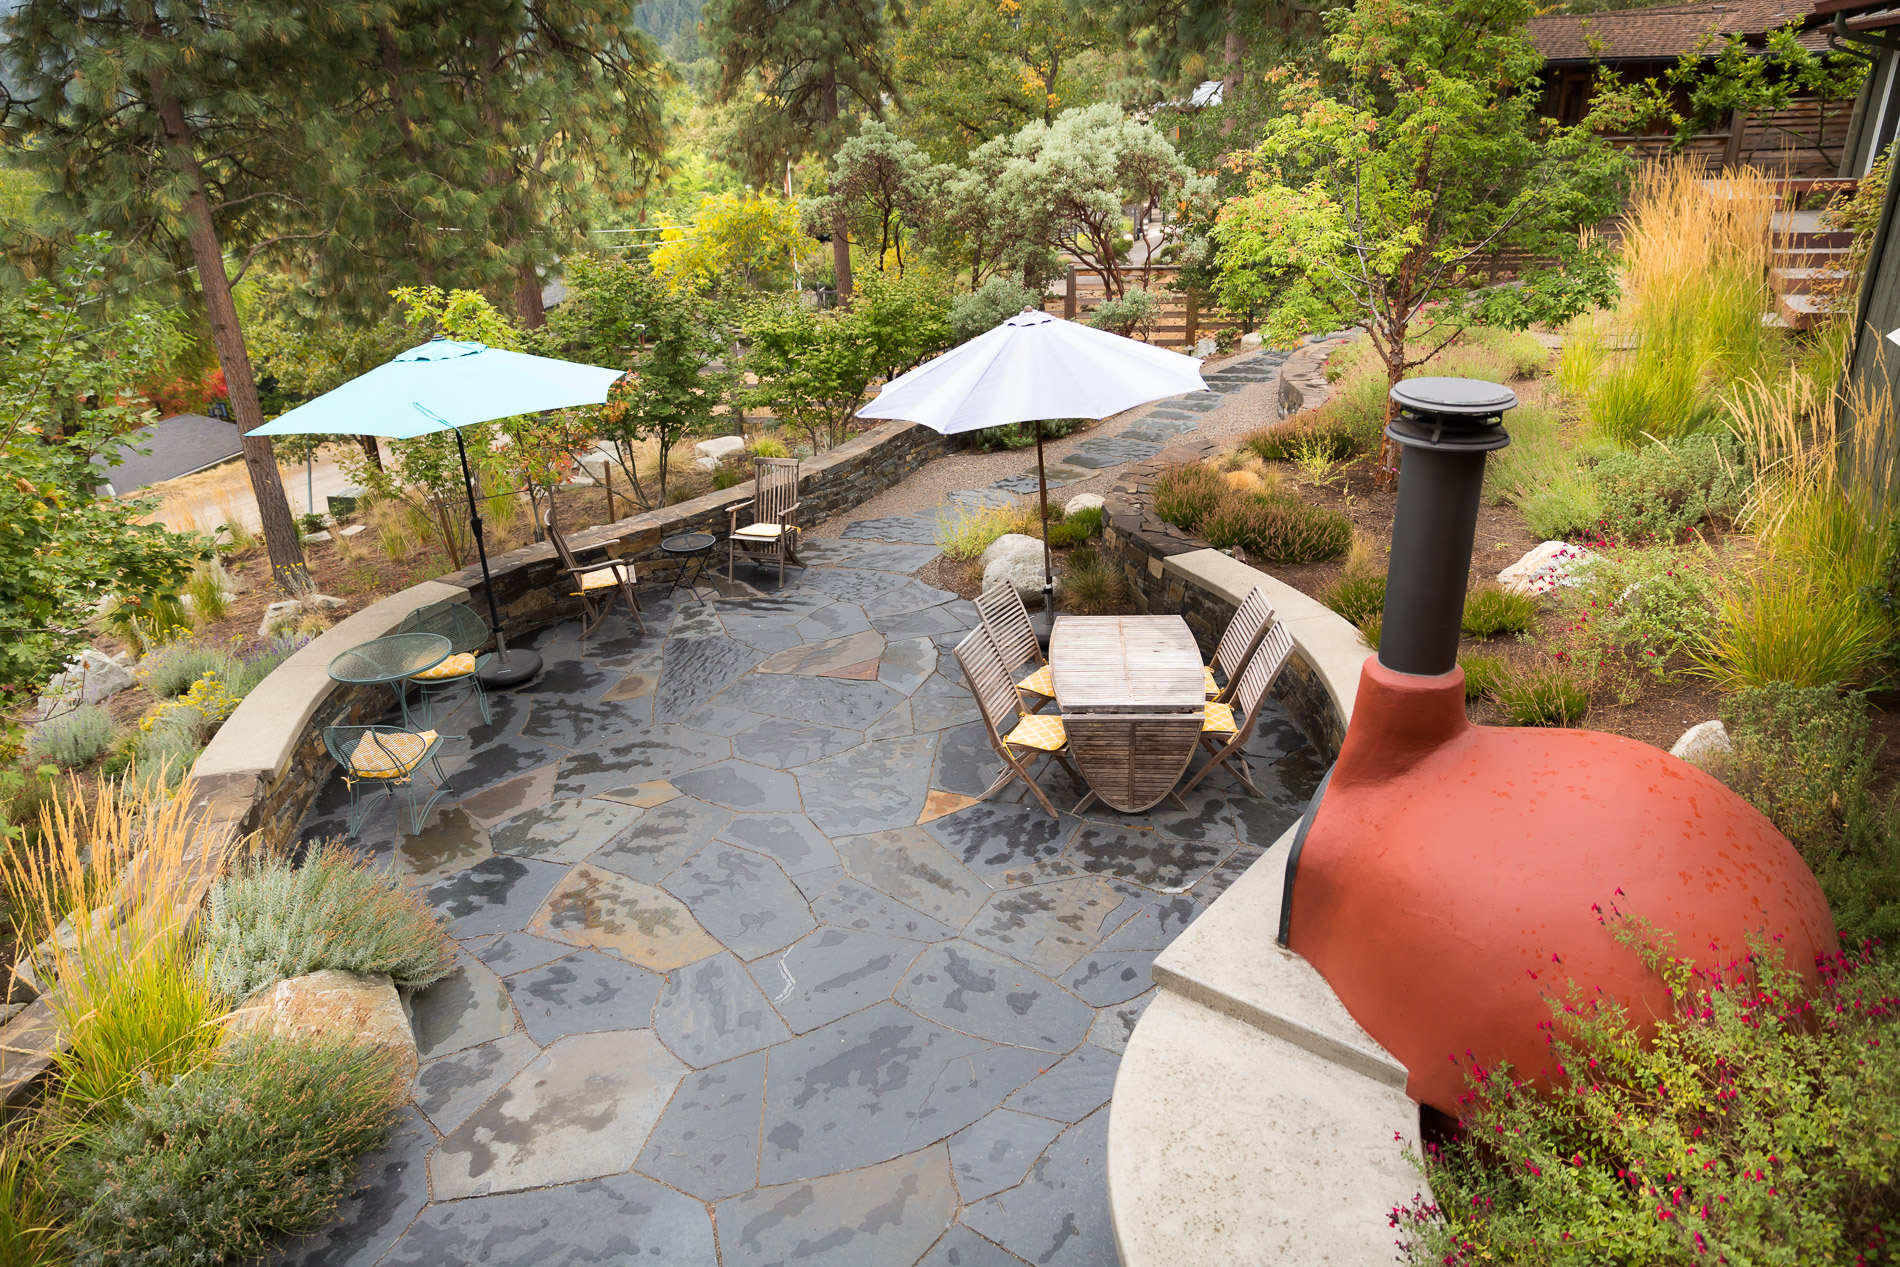 Flagstone Dining Patio + Overlook + Curved conrete + stacked rock walls